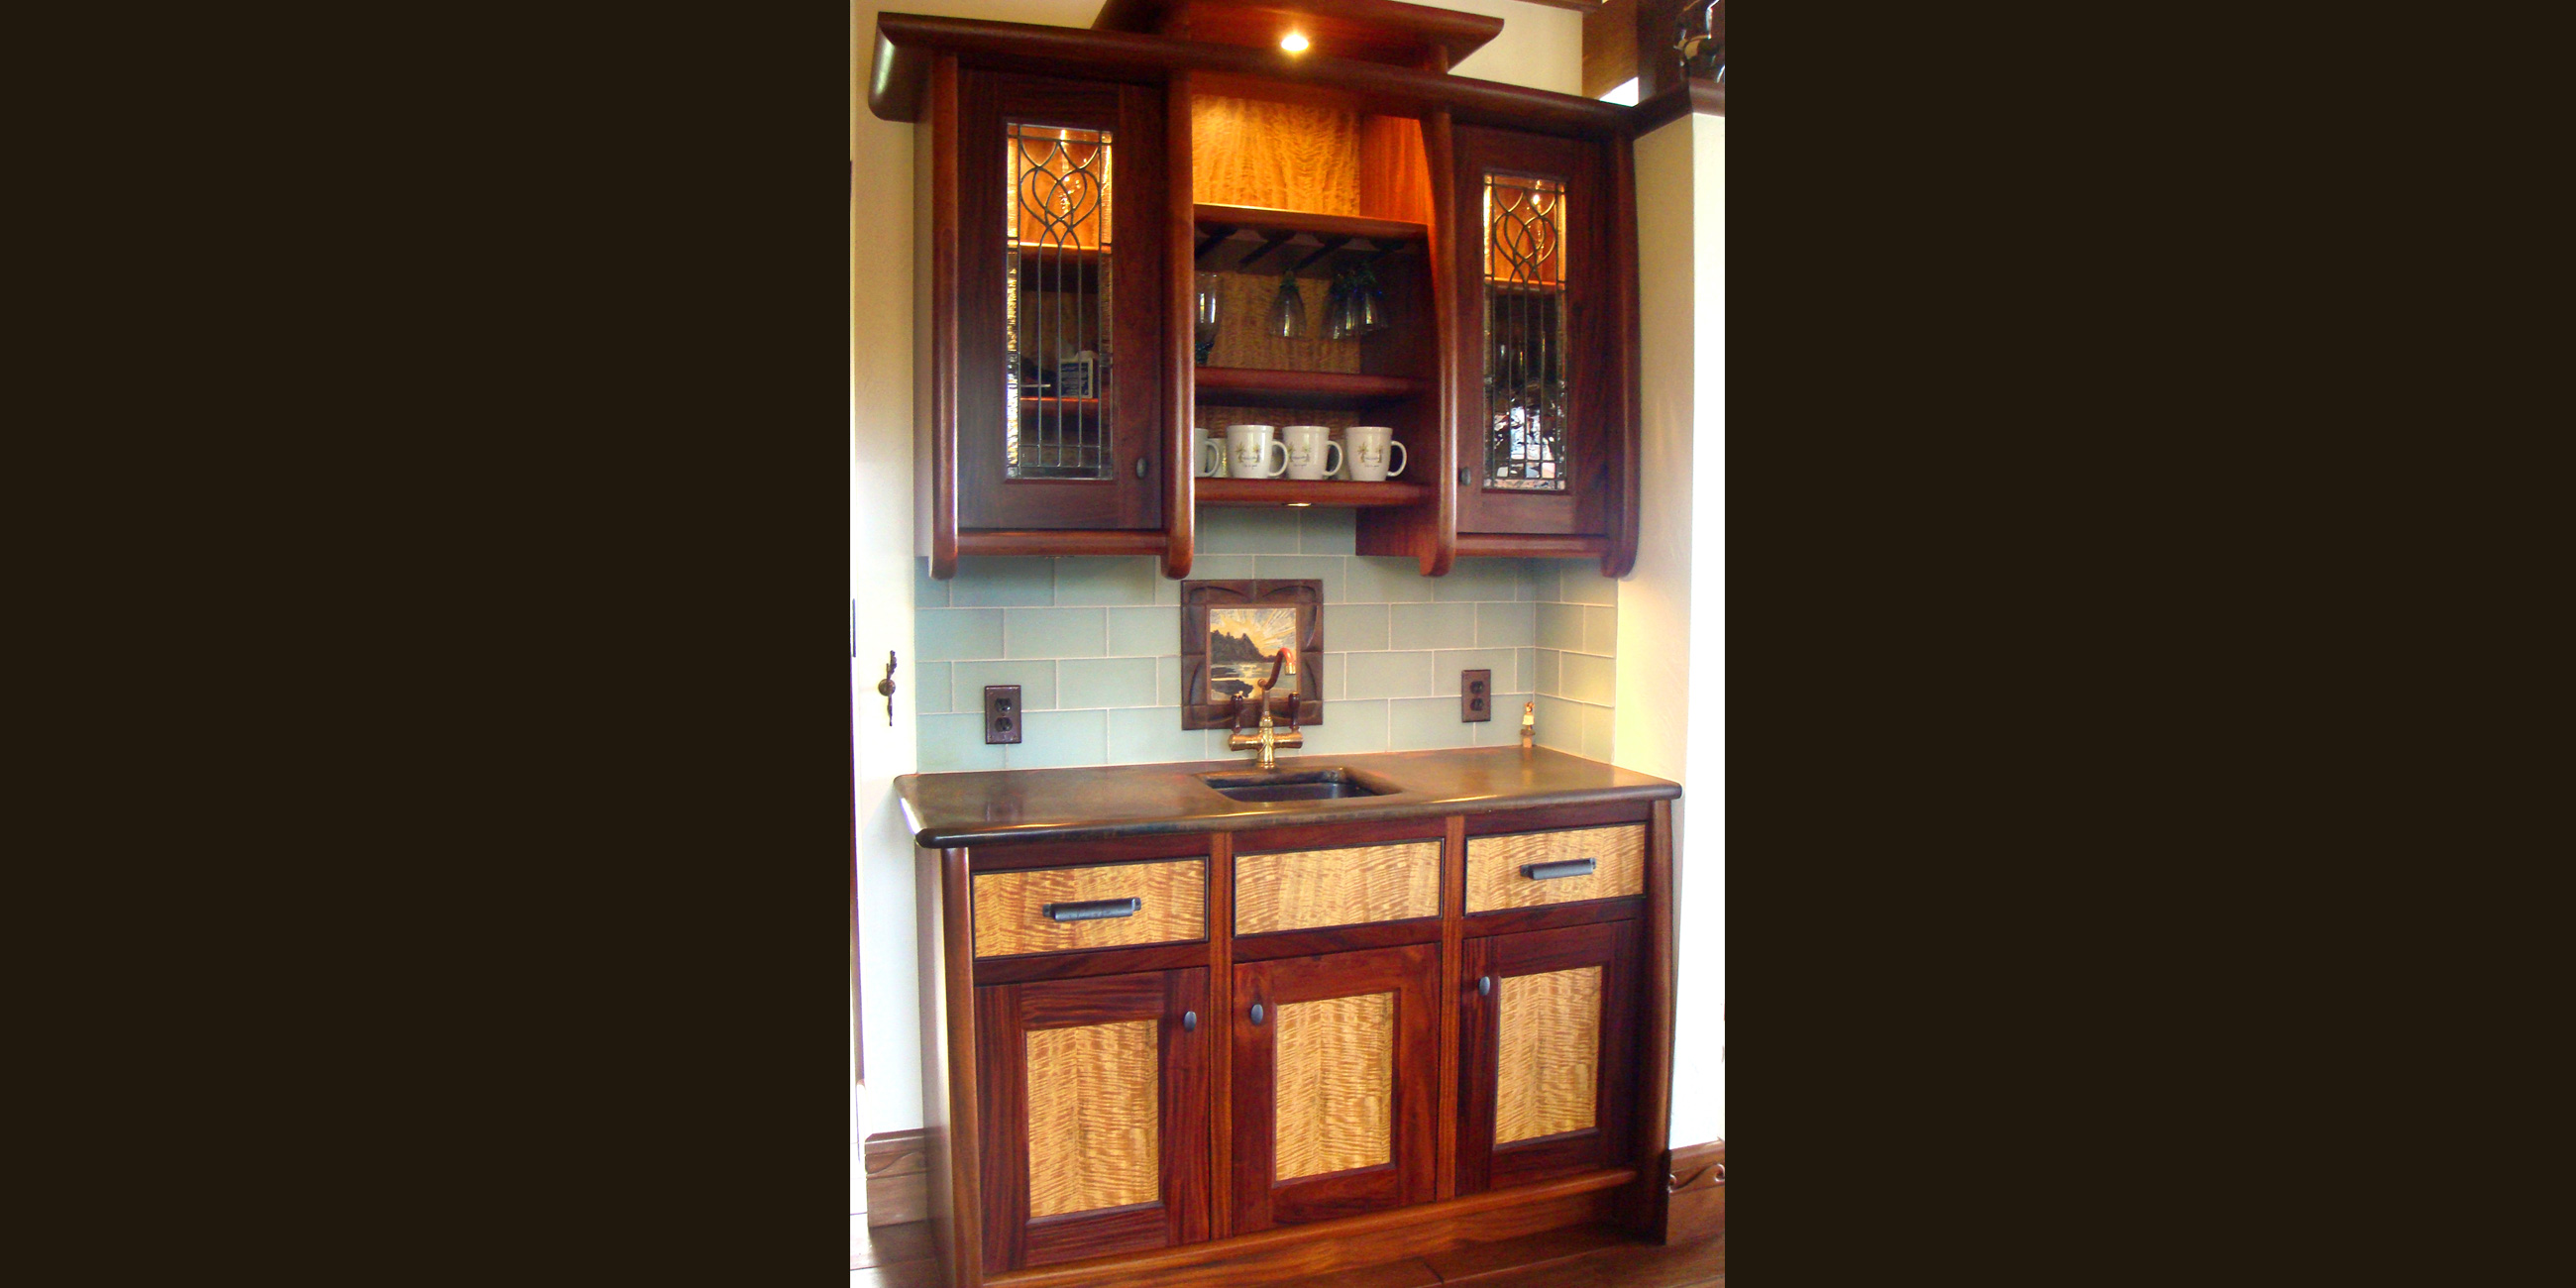 71_kauai_kitchen_home_page_det2